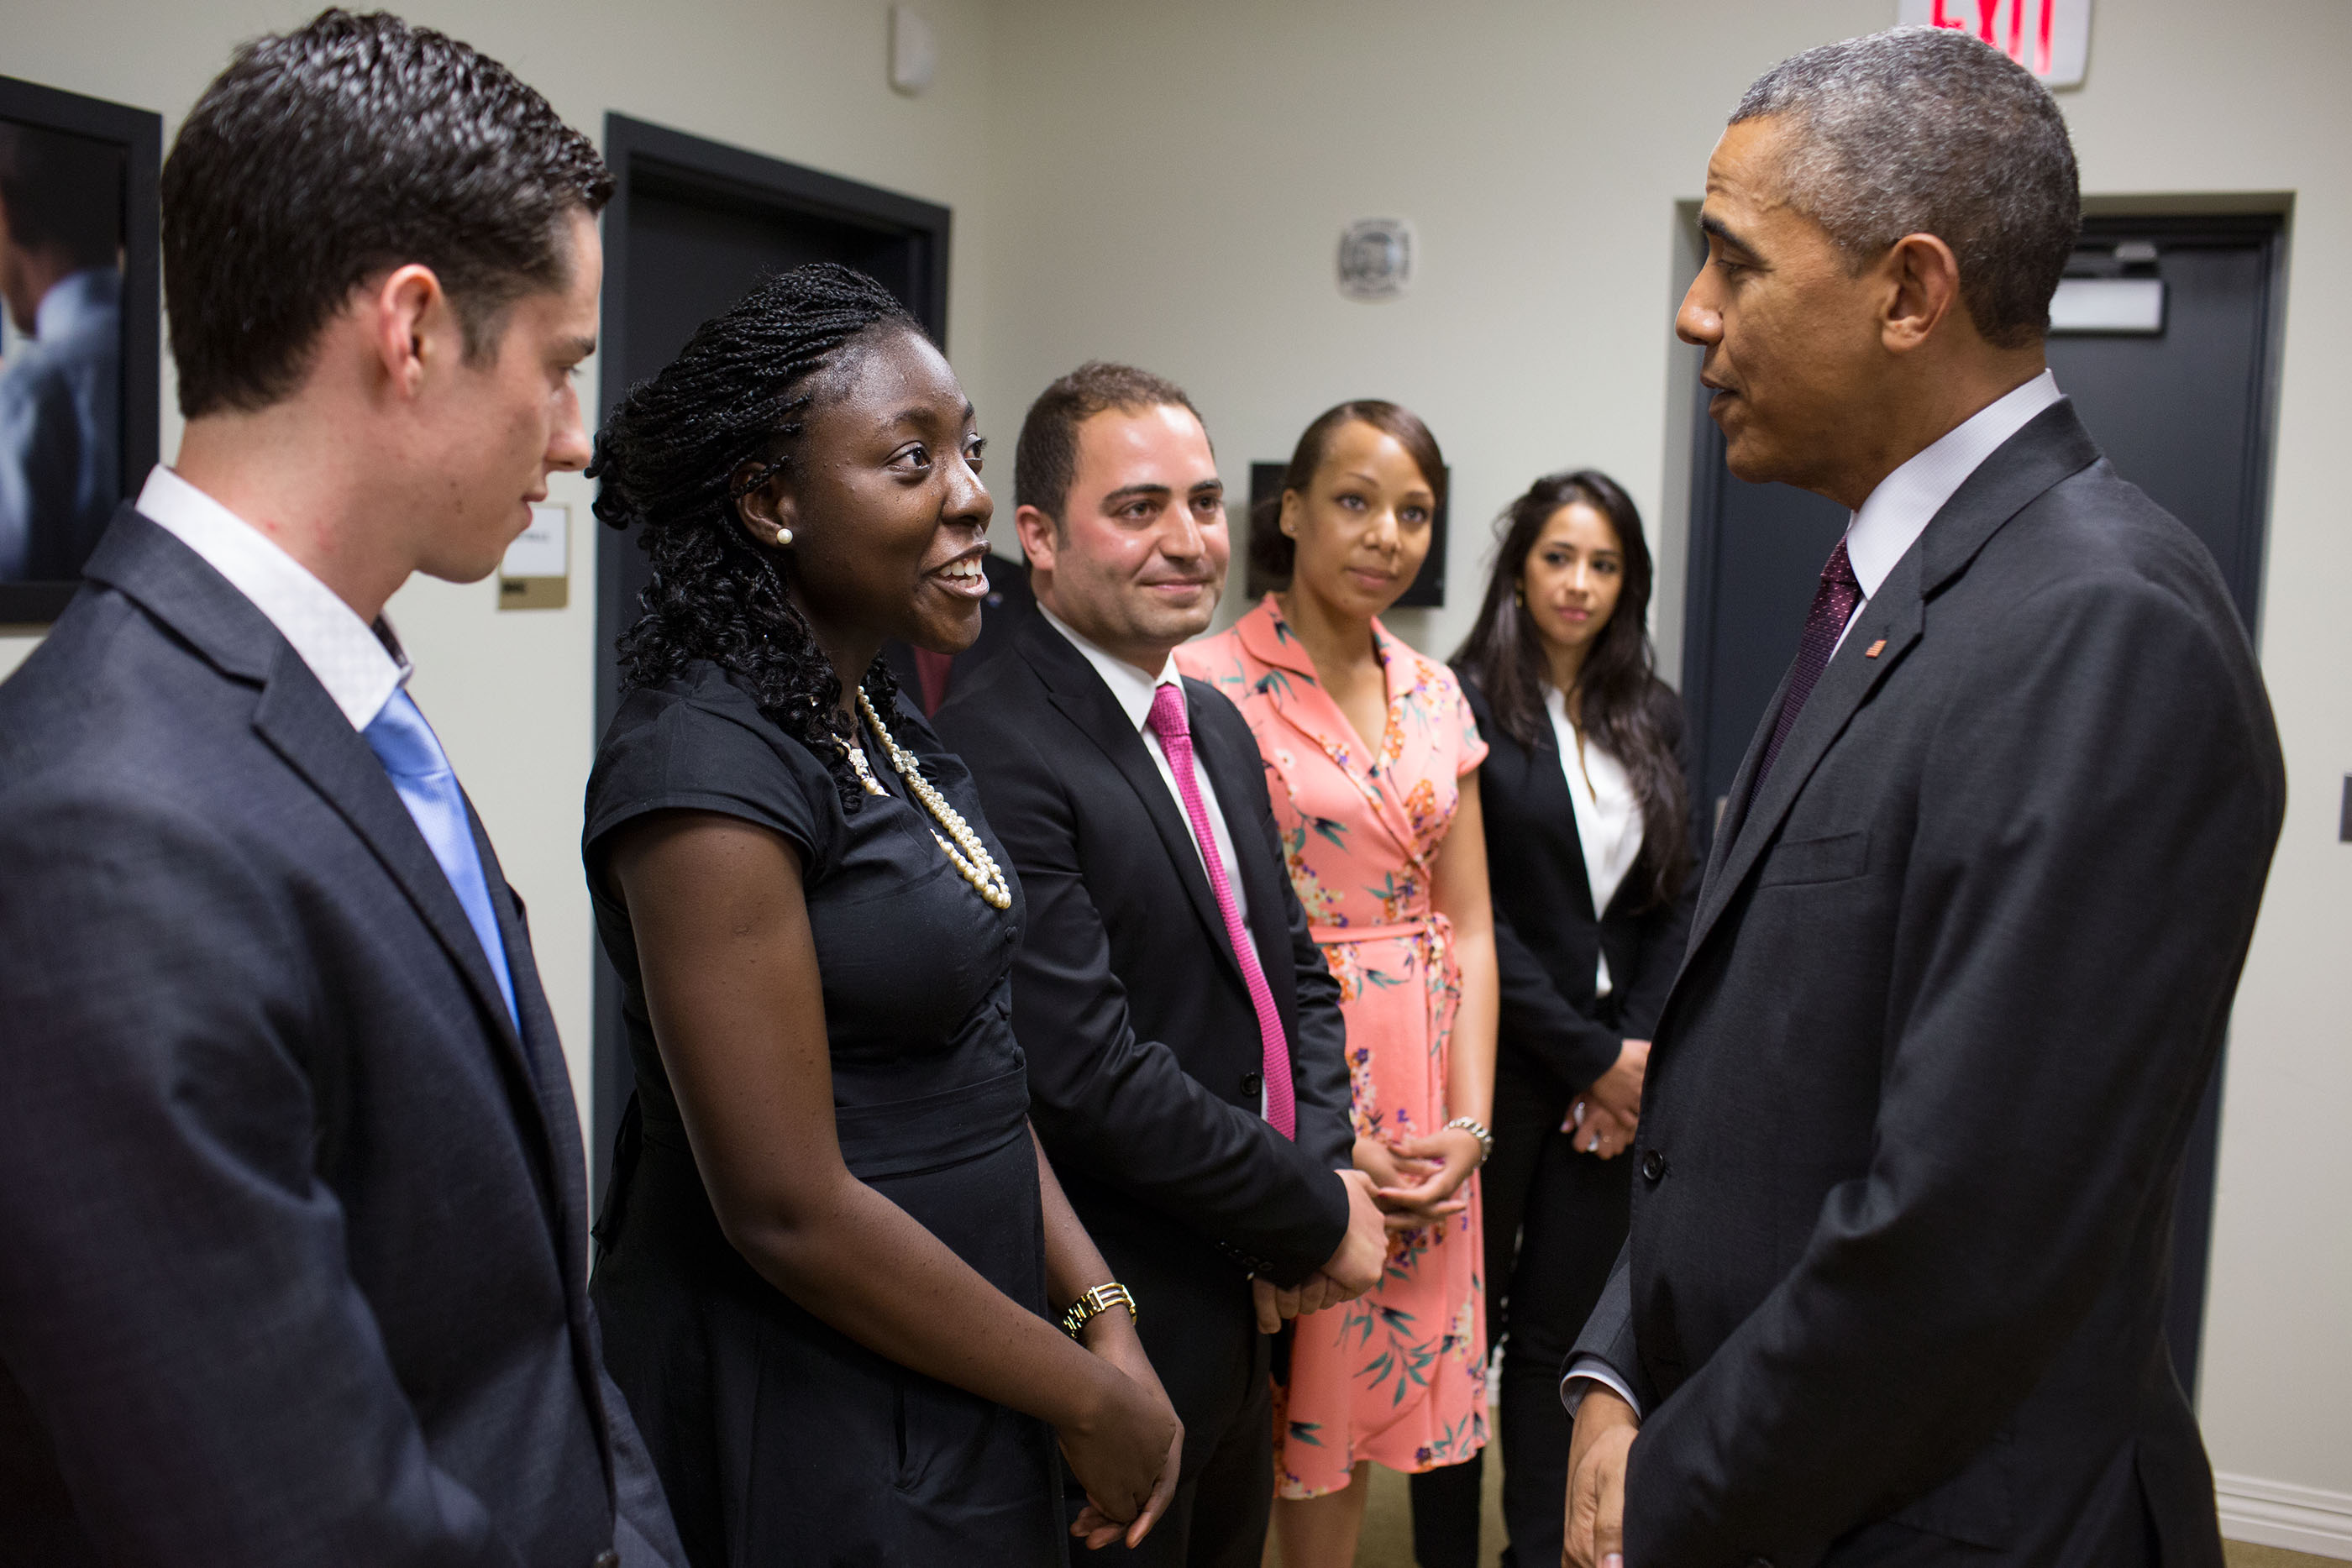 President Obama greets young entrepreneurs in South Court